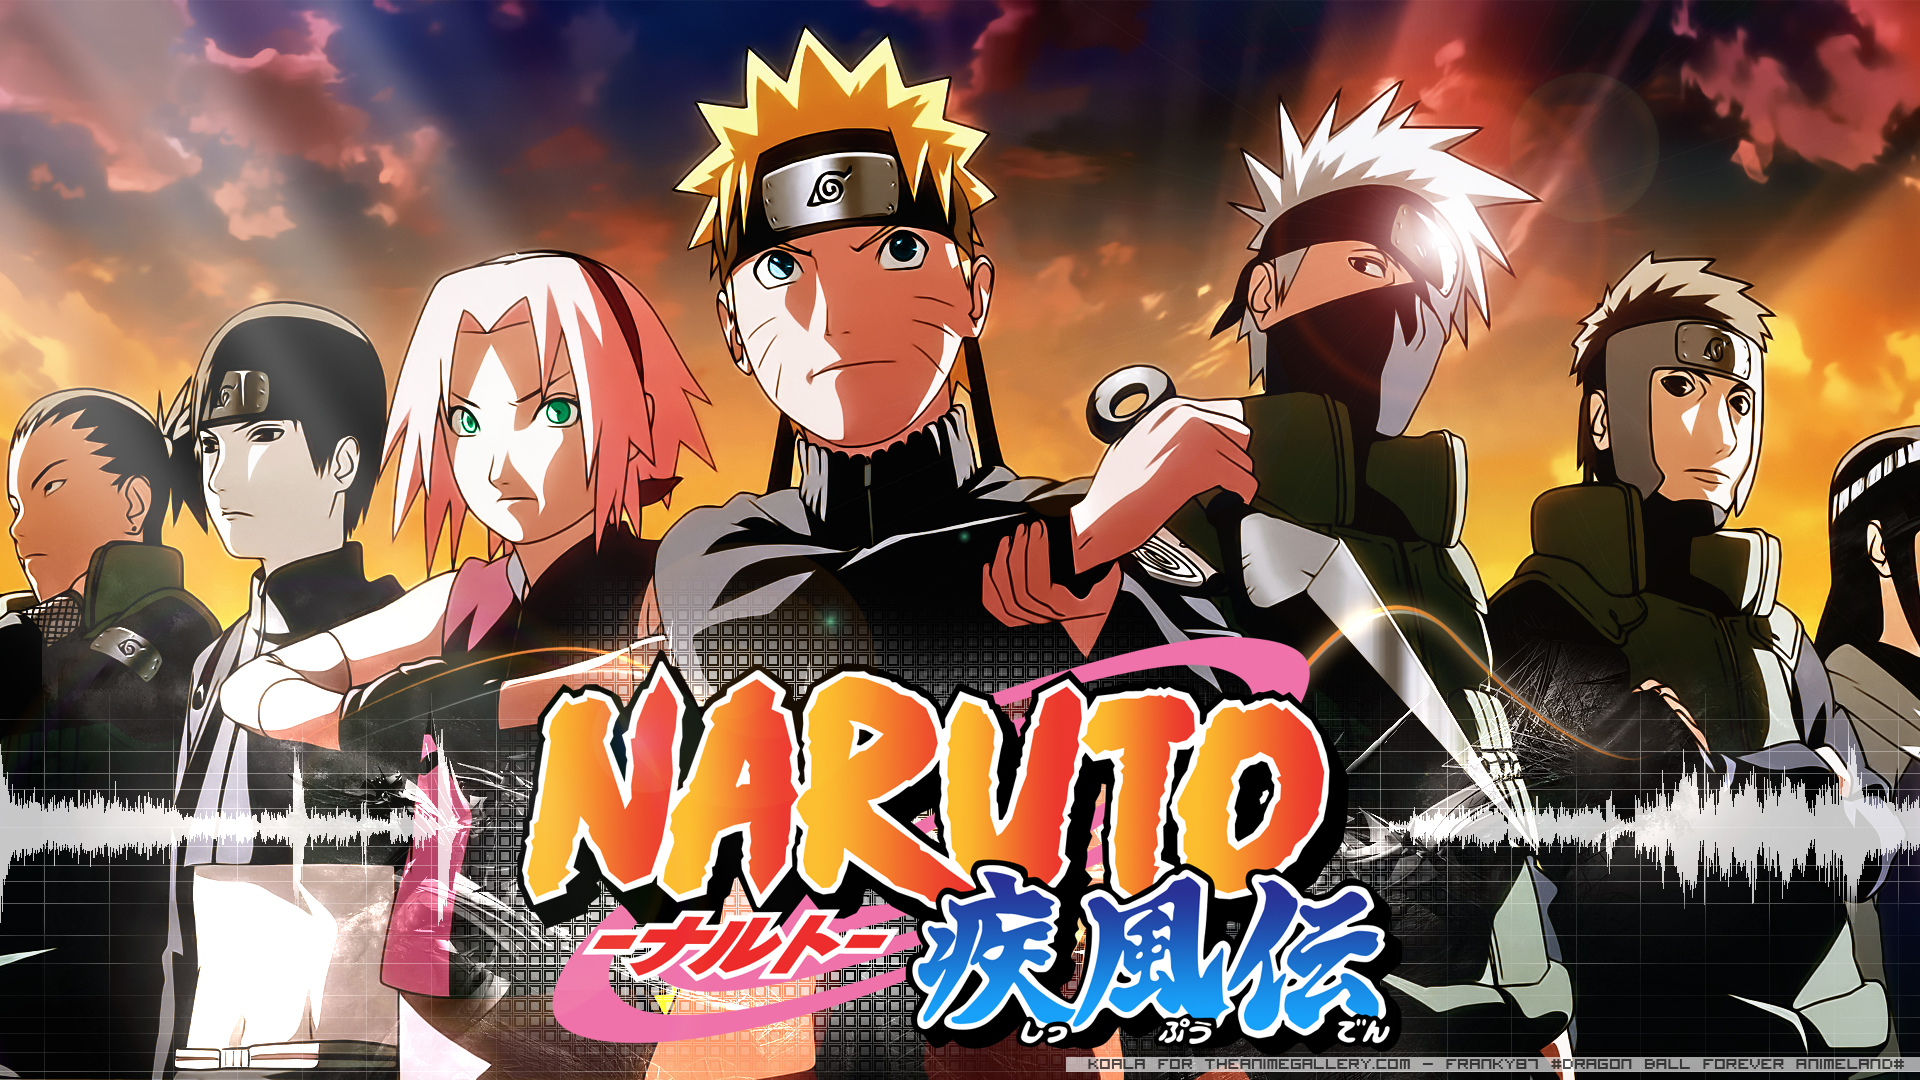 The End of Naruto Marks the End of a Great Era